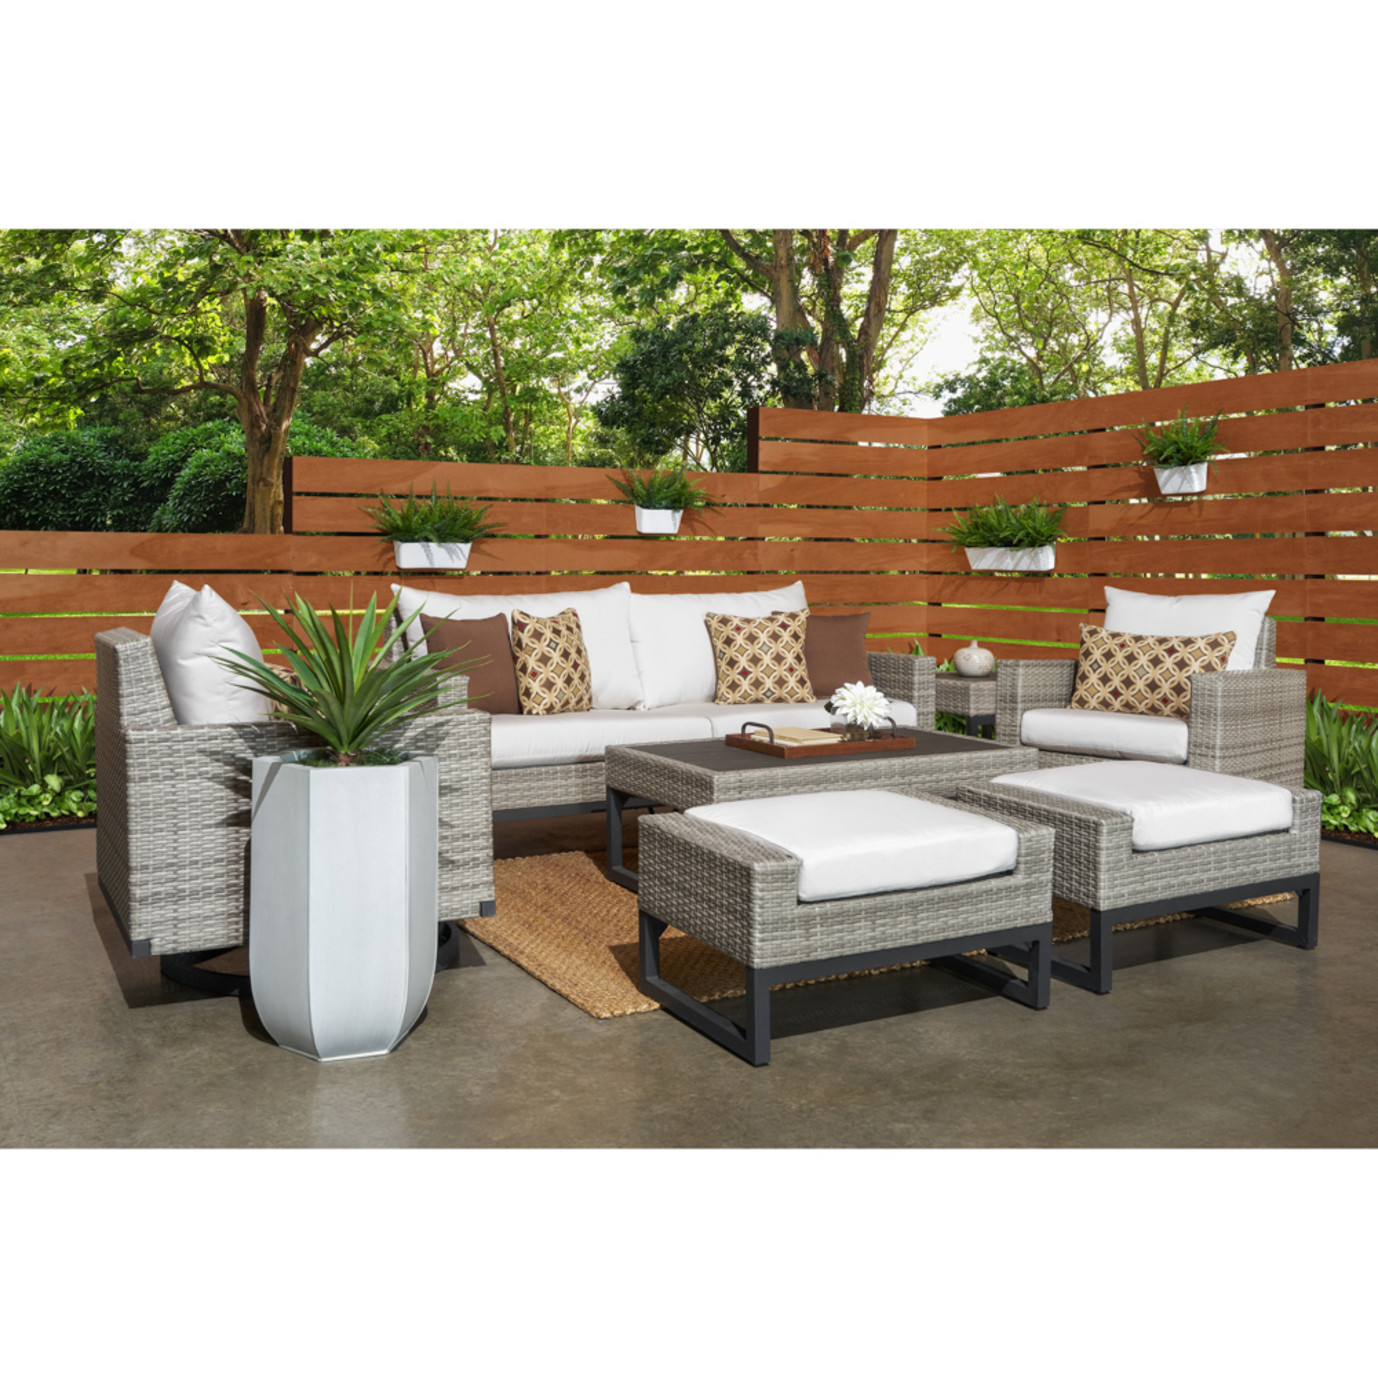 Milo™ Grey 7pc Motion Deep Seating Set - Moroccan Cream